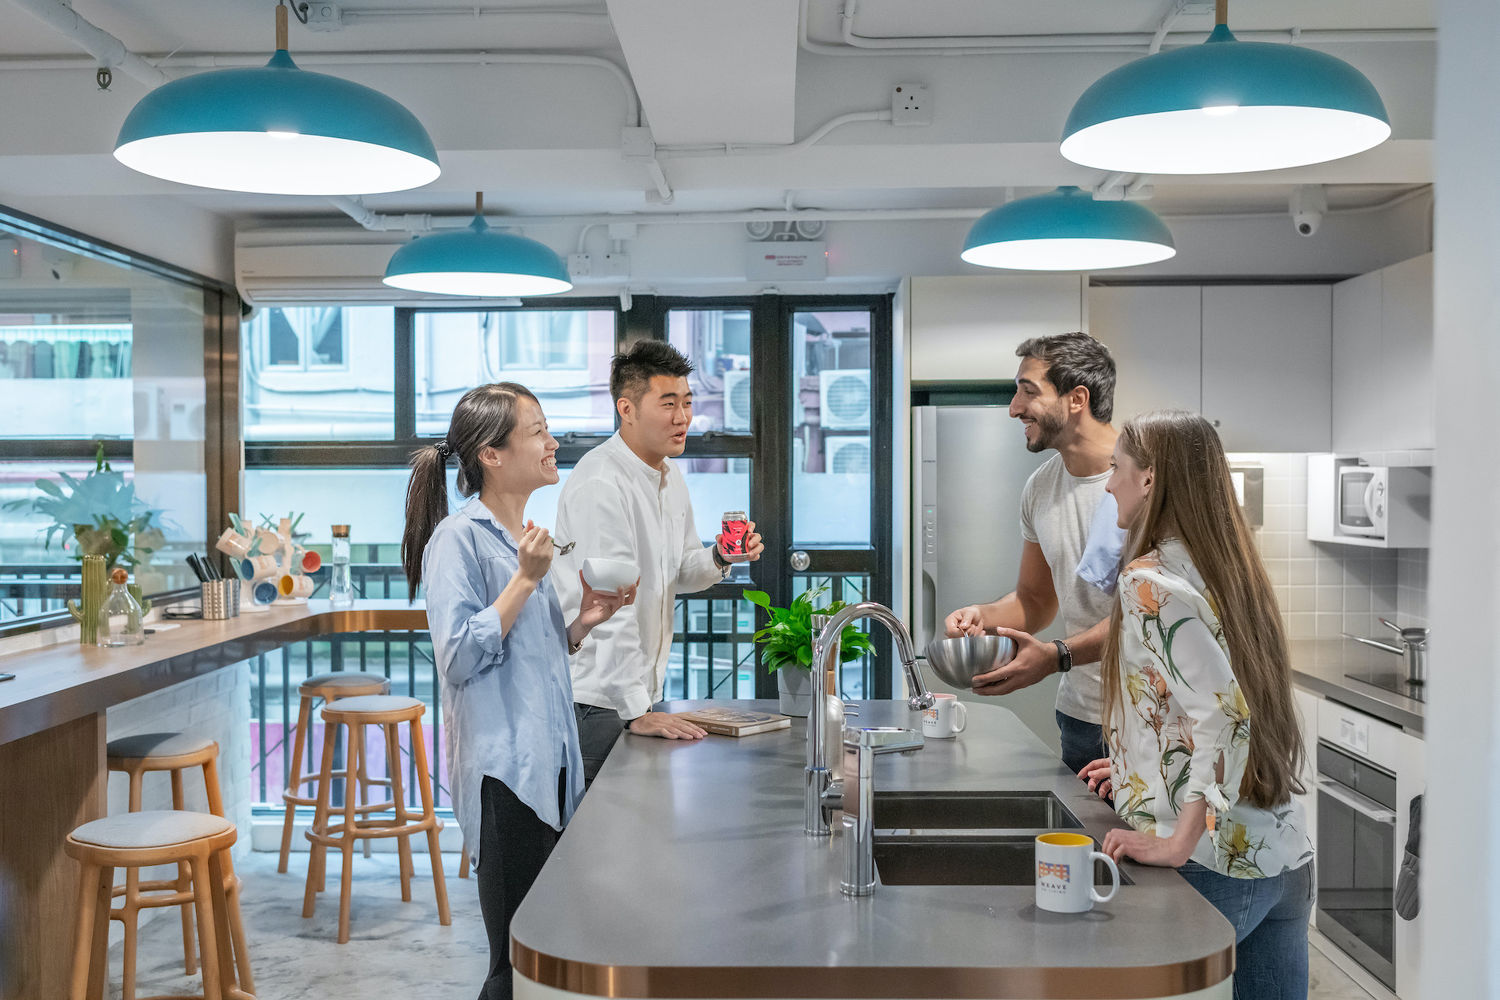 EDGEPROP SINGAPORE -  The kitchen and dining area is one of the shared amenities among residents at Weave on Baker (Photo: Weave Co-Living)  - EDGEPROP SINGAPORE